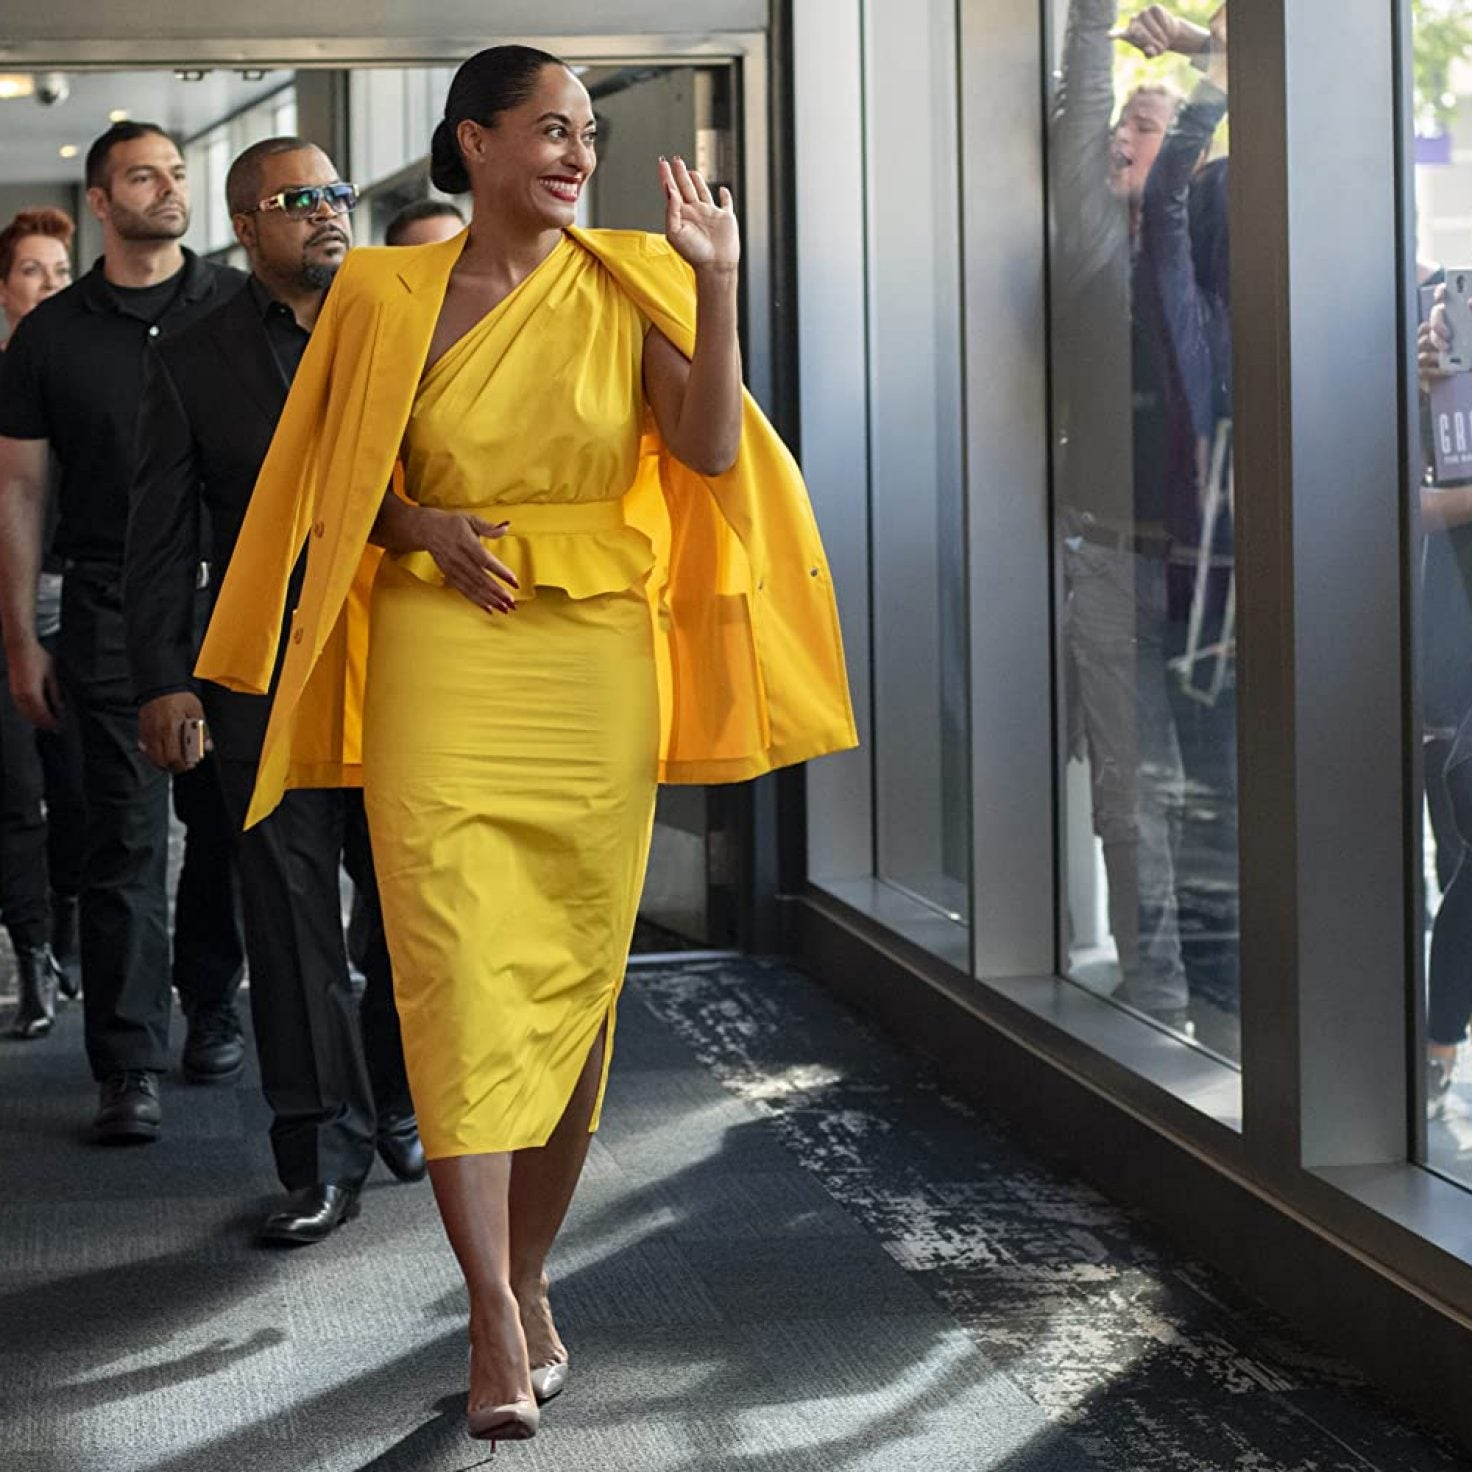 'High Note' Star Tracee Ellis Ross Steps Into The Recording Booth For 'Love Myself'